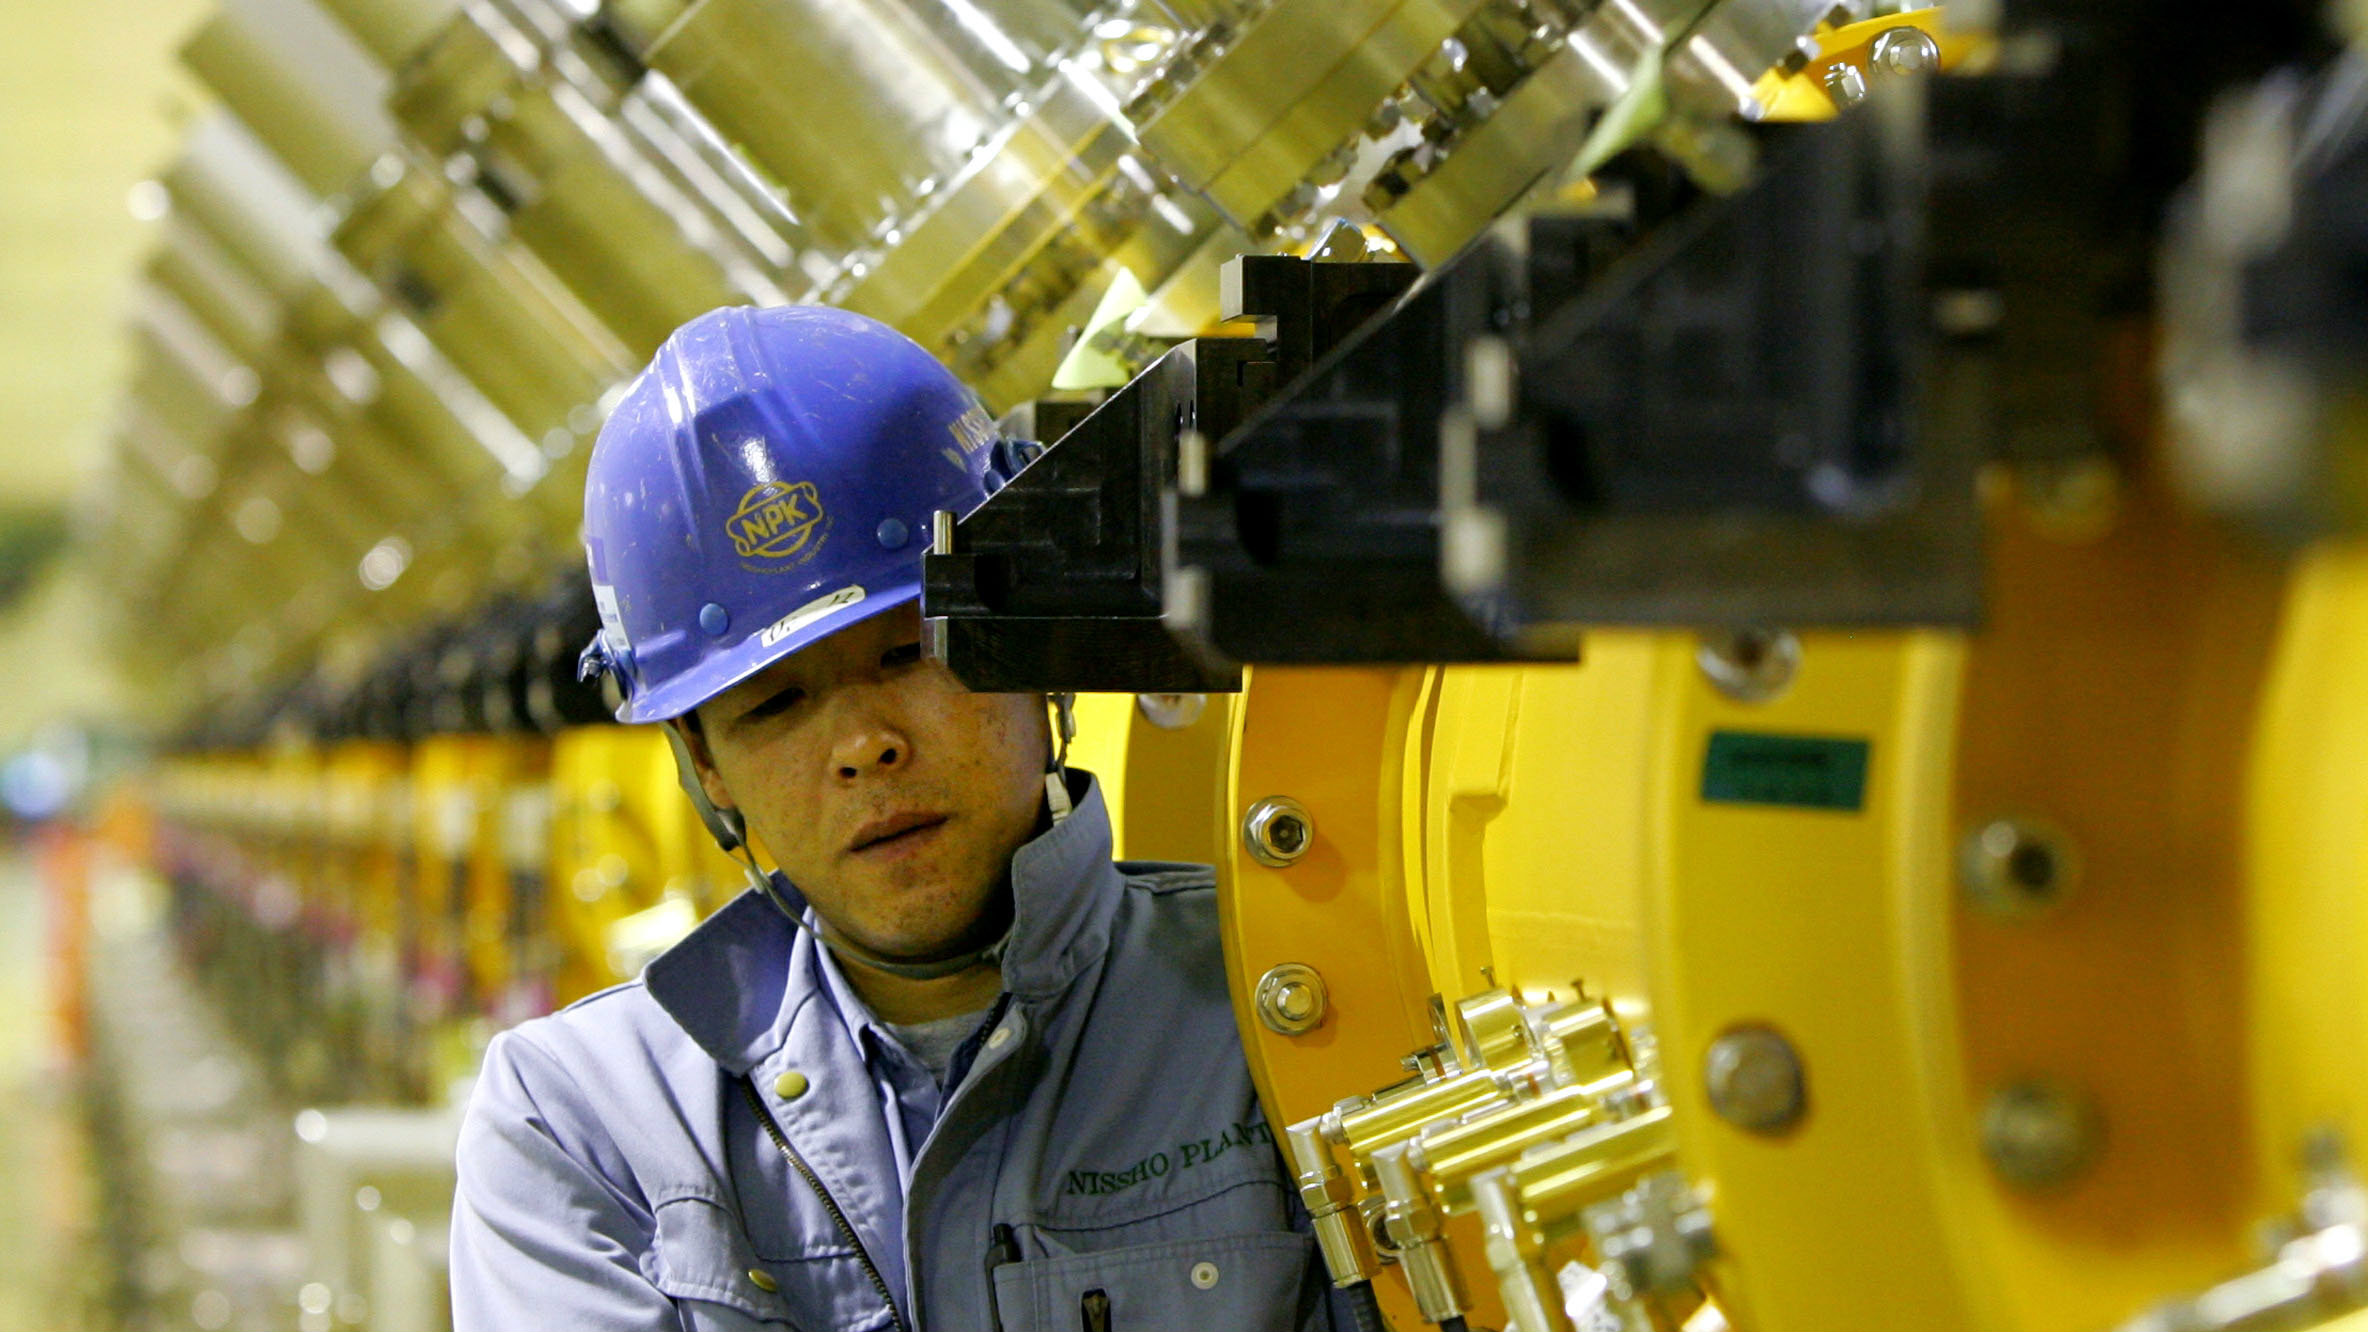 "A worker works on a part of a 330 meters proton linear accelerator at a Japan Proton Accelerator Research Complex ""J-PARC"" facility in Tokai village, about 130 km (81 miles) northeast of [Tokyo] May 16, 2006. The facility, which is in the process of being built jointly by the High Energy Accelerator Research Organization and the Japan Atomic Energy Agency, is expected to start its operations in 2008. J-PARC aims to pursue frontier science in particle physics, nuclear physics, materials science, life science and nuclear technology, using a new proton accelerator complex at the highest beam power in the world, the facility officials said."